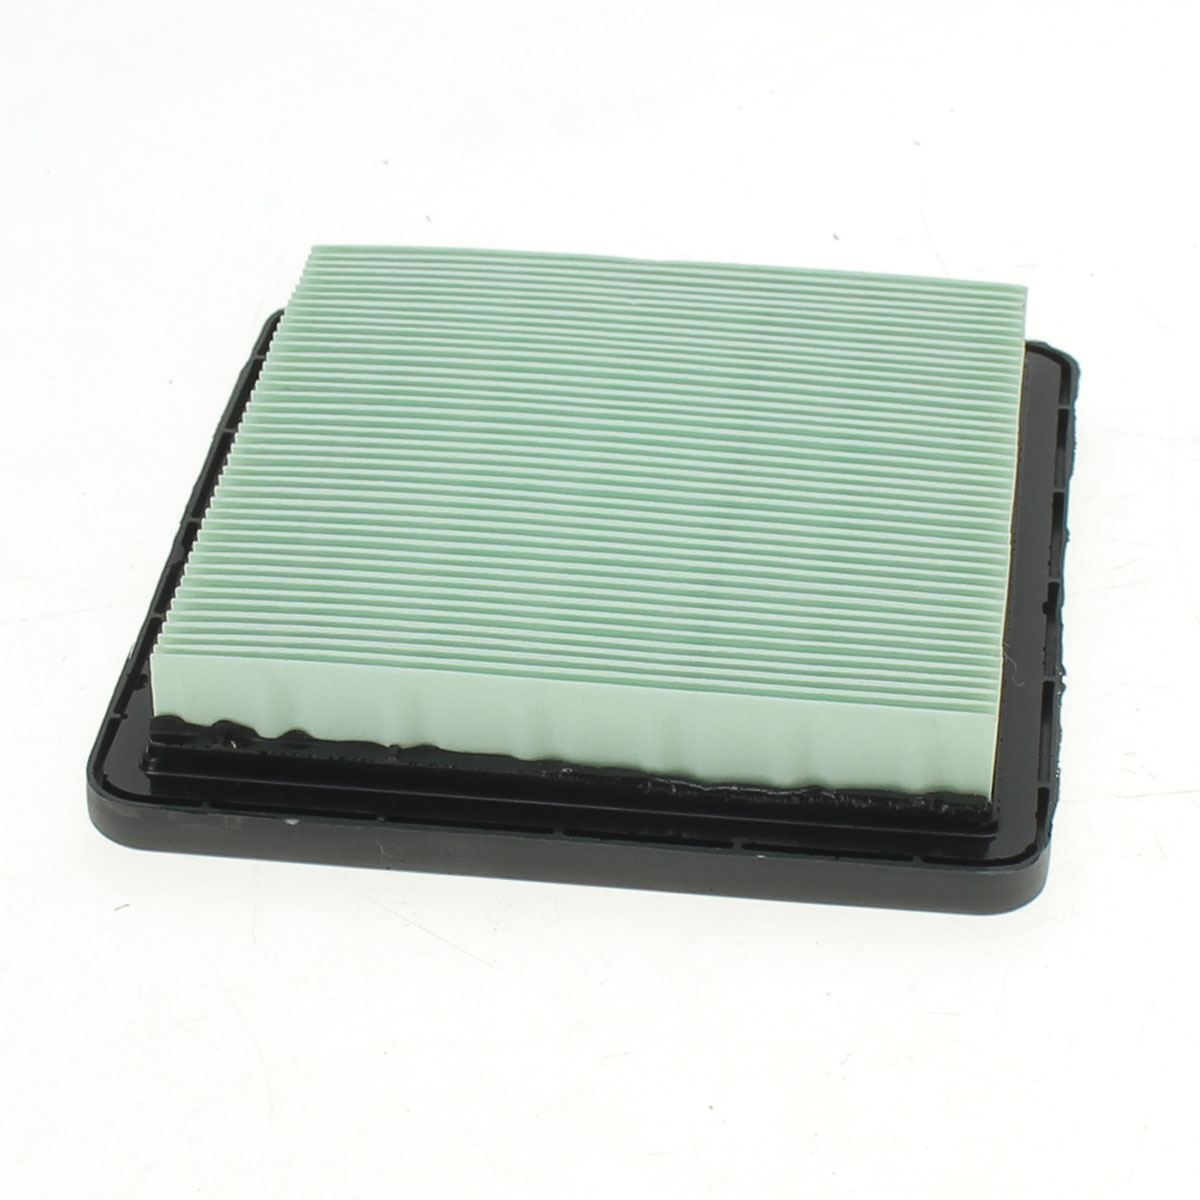 Engine Air Filter Element For Honda 17211-ZL8-023 17211-ZL8-000 17211-ZL8-003